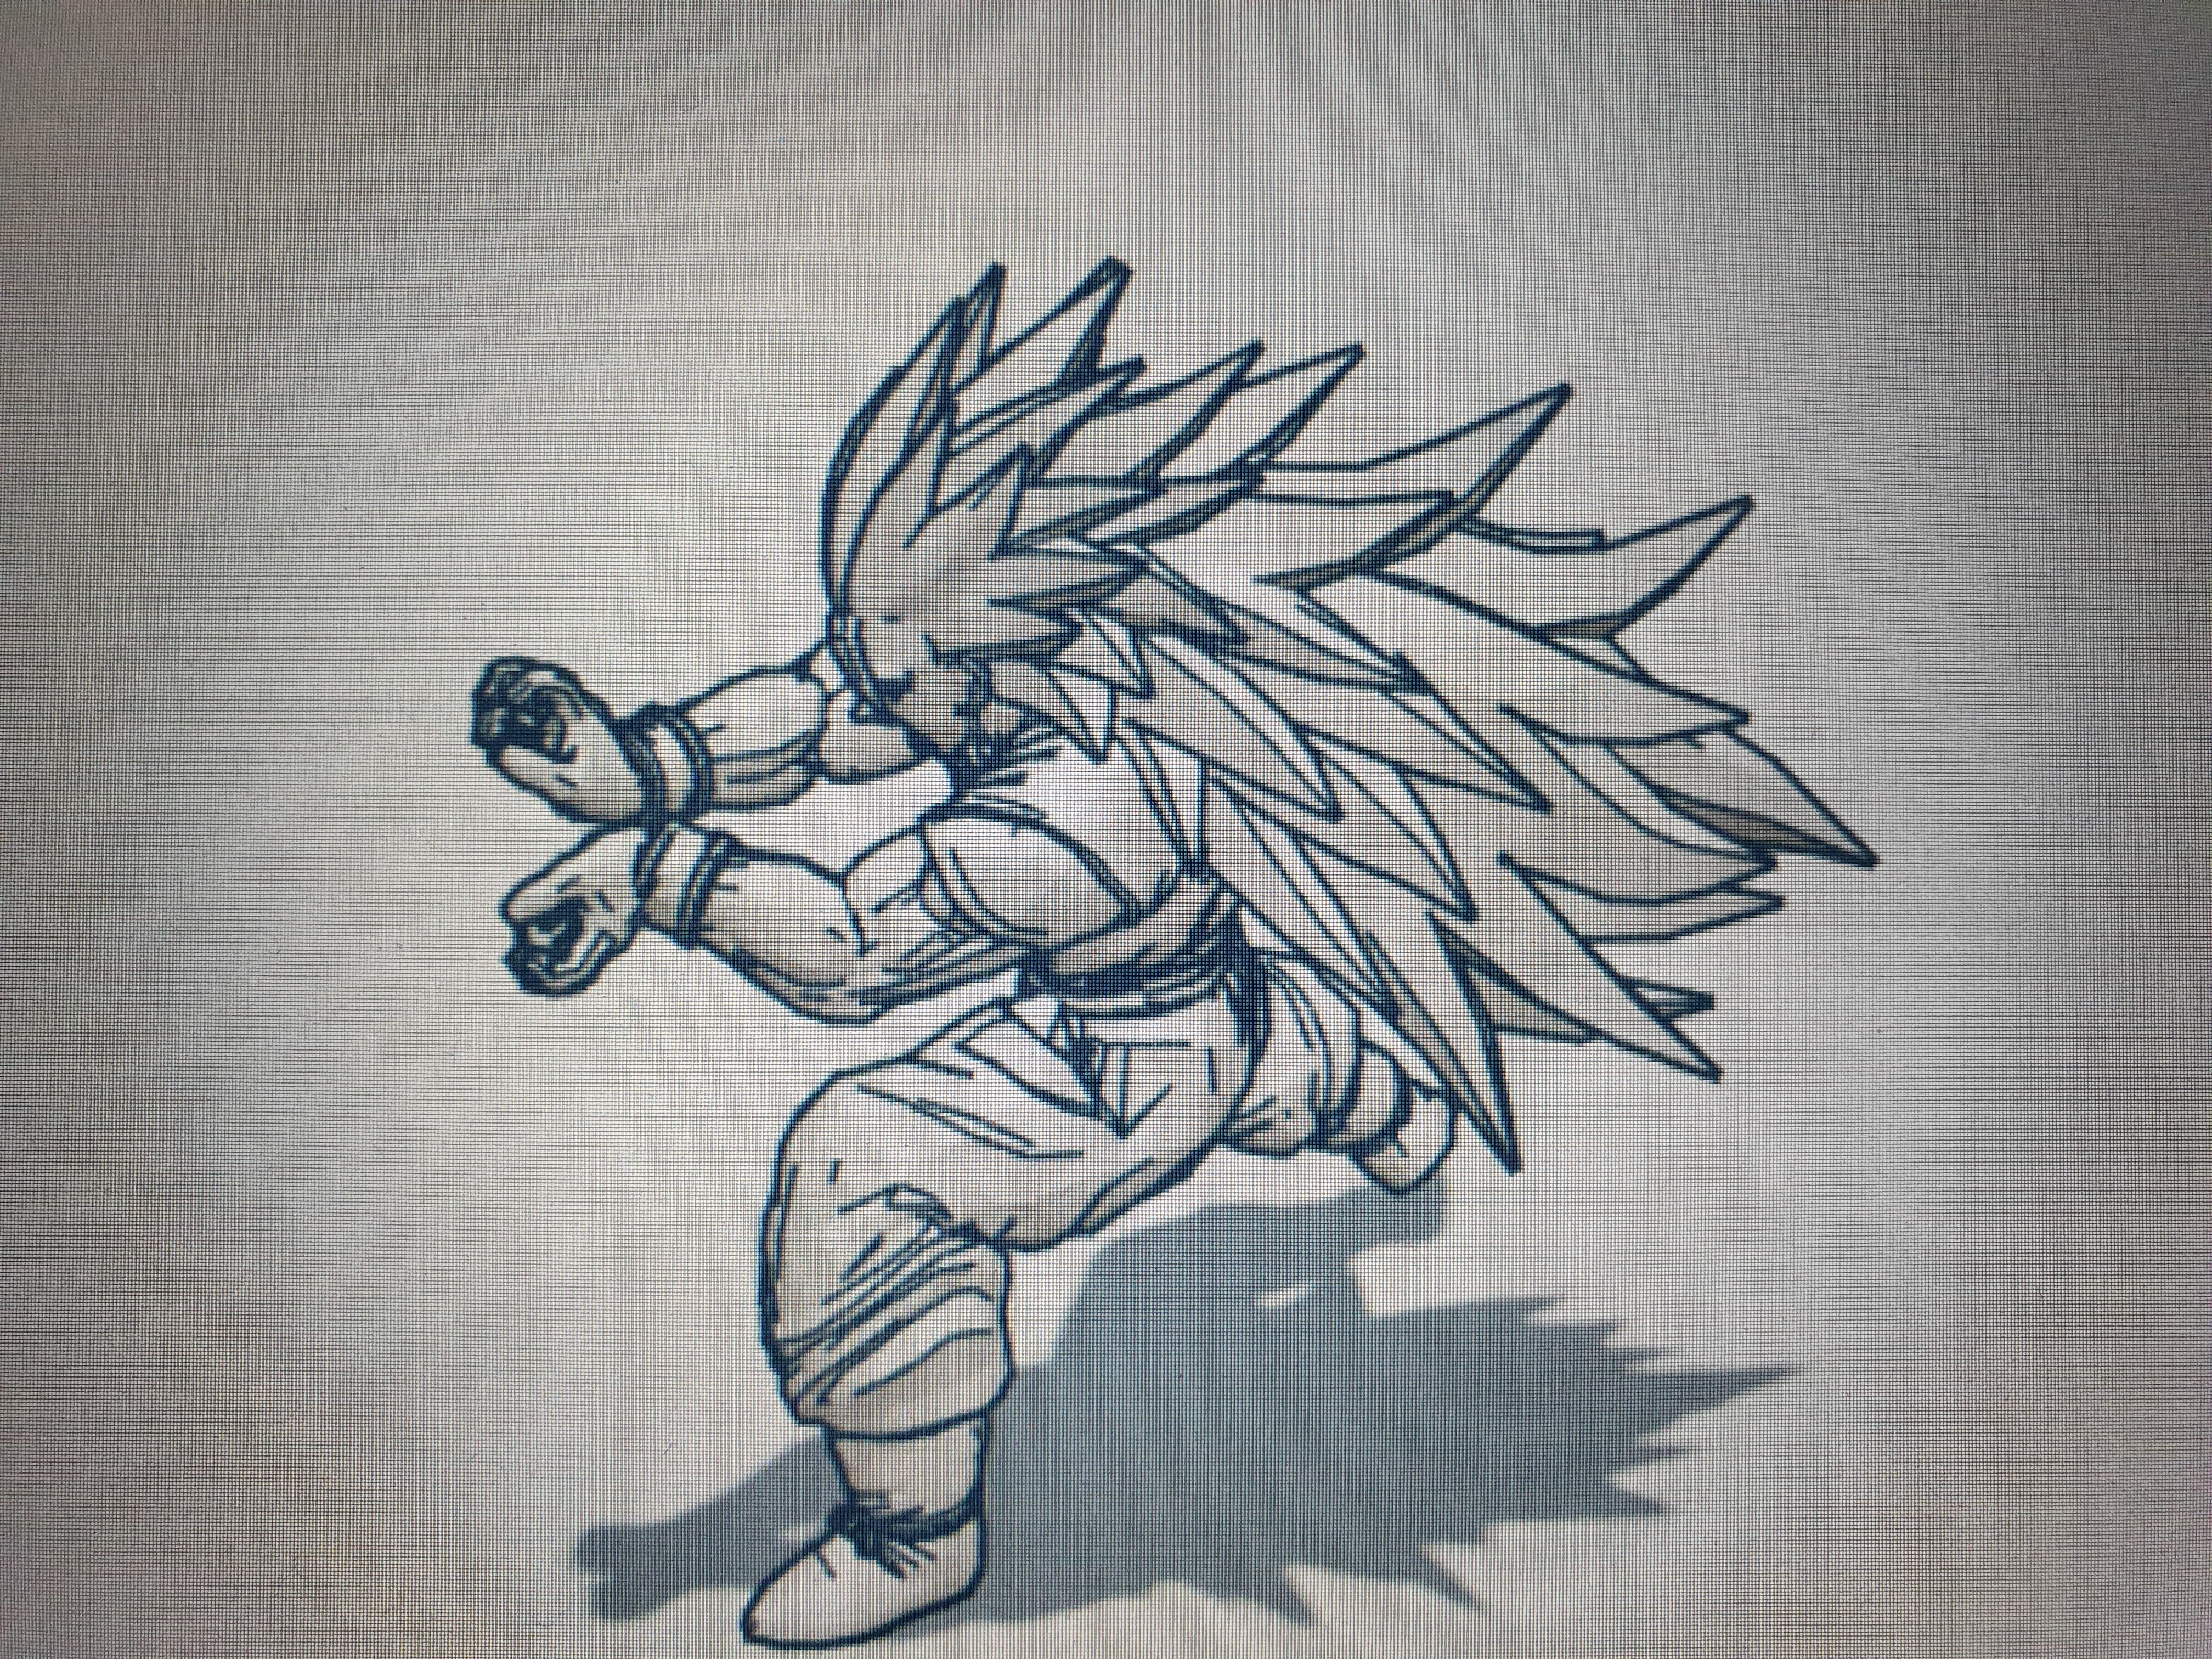 20200410_184557.jpg Télécharger fichier STL gratuit GOKU DRAGON BALL FIGURINE MANGA ANIME DRAGON BALL Z • Modèle à imprimer en 3D, Mathias_Cst07